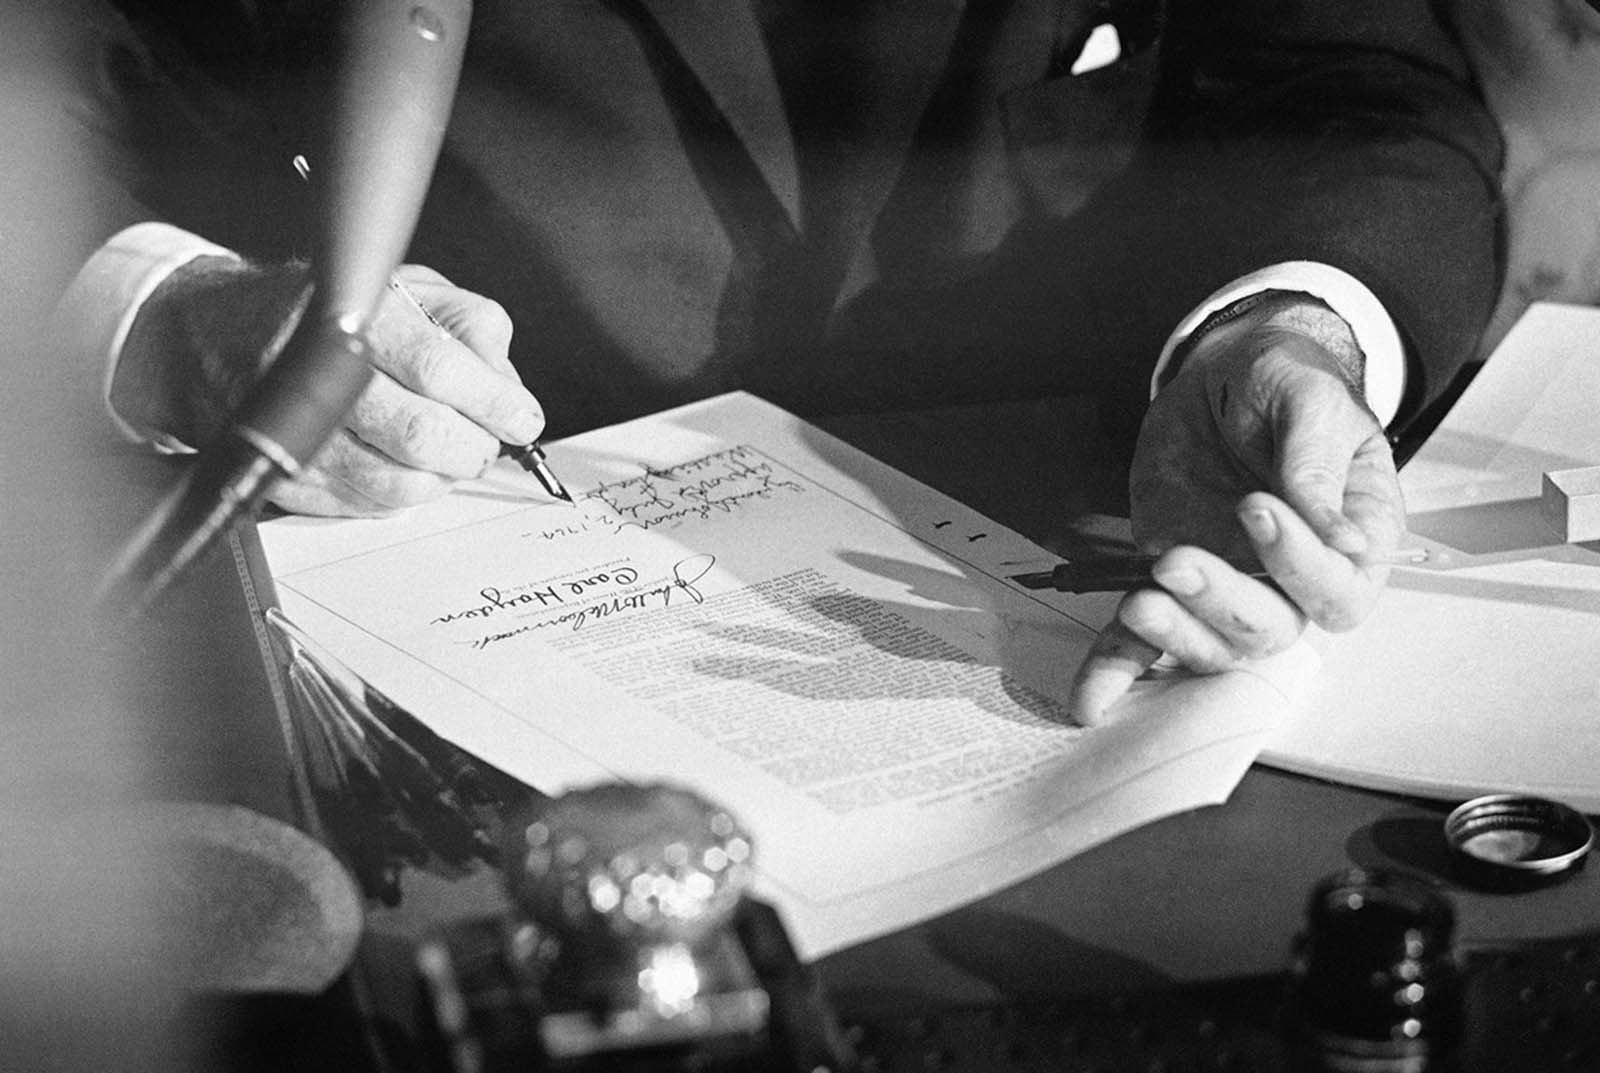 President Lyndon Johnson signs the Civil Rights Bill in the East Room of the White House in Washington on July 2, 1964. The law outlawed discrimination based on race, color, religion, sex, or national origin, and ended unequal application of voter registration requirements and racial segregation in schools, at the workplace and by facilities that served the general public.